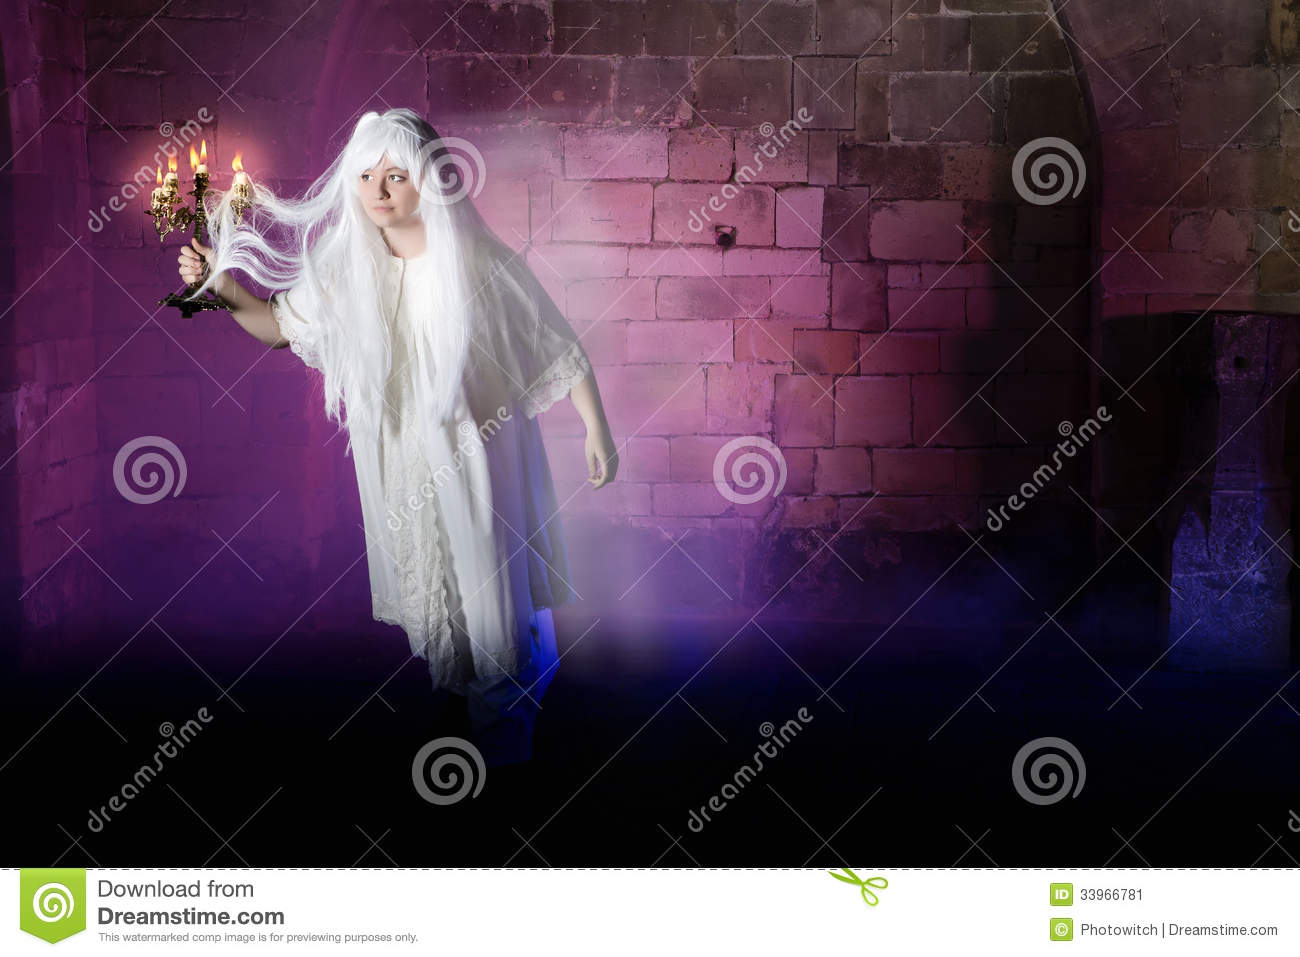 Pale Woman In Nightgown Sleepwalking Or A Ghost In A Medieval Castle